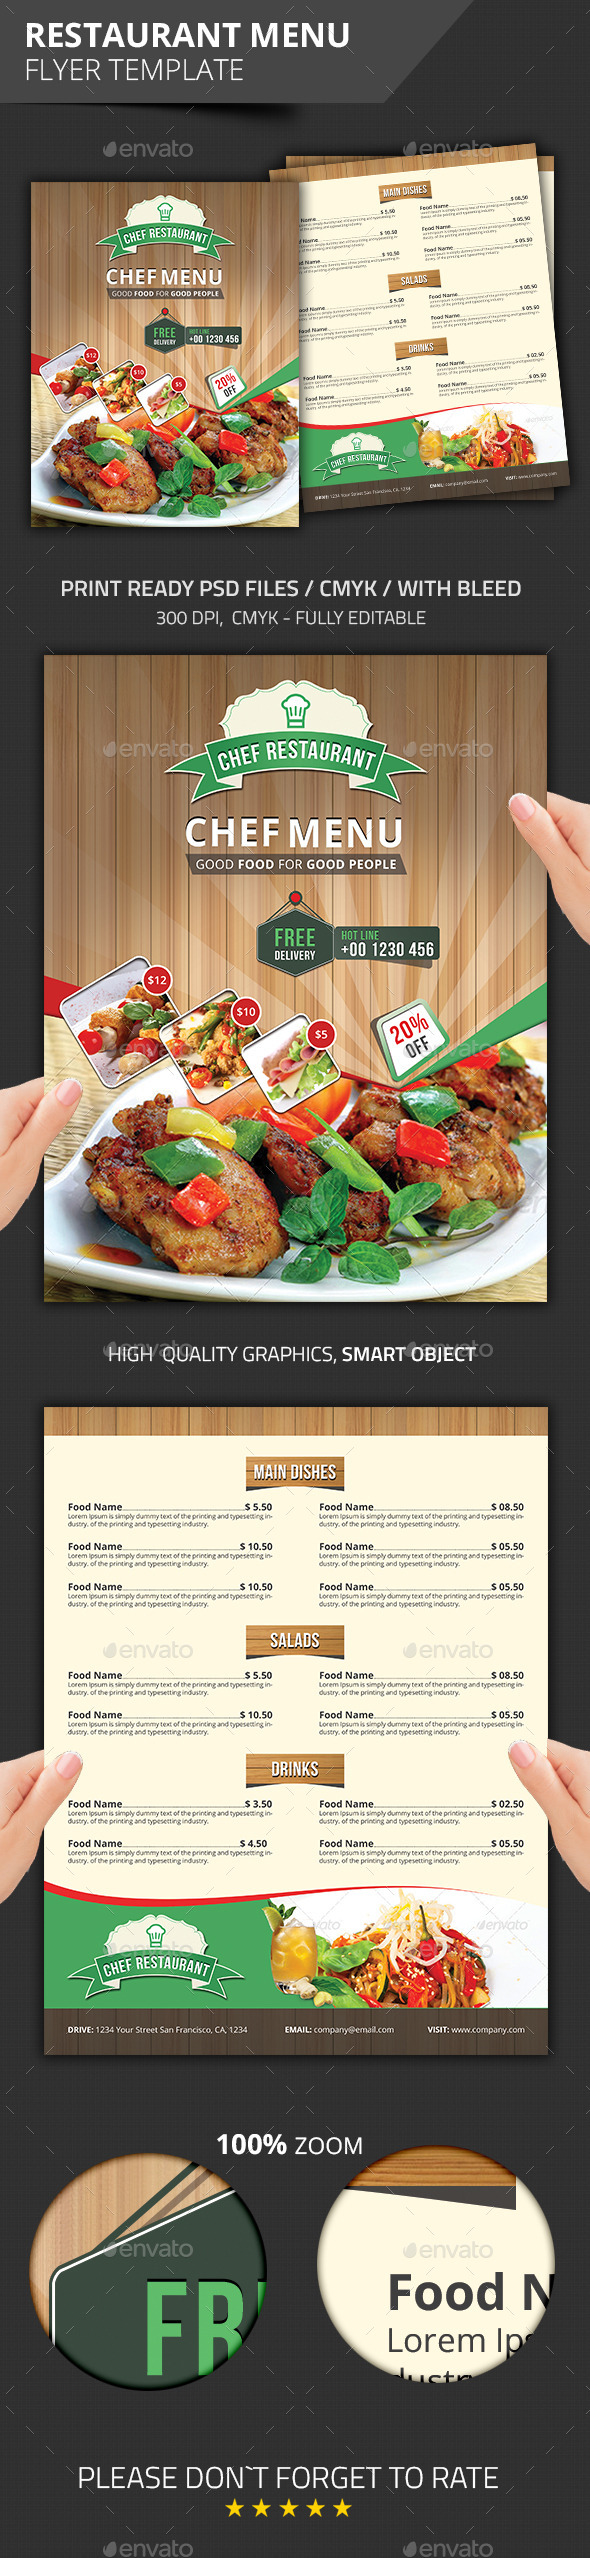 GraphicRiver Restaurant Menu Flyer Template 8828558